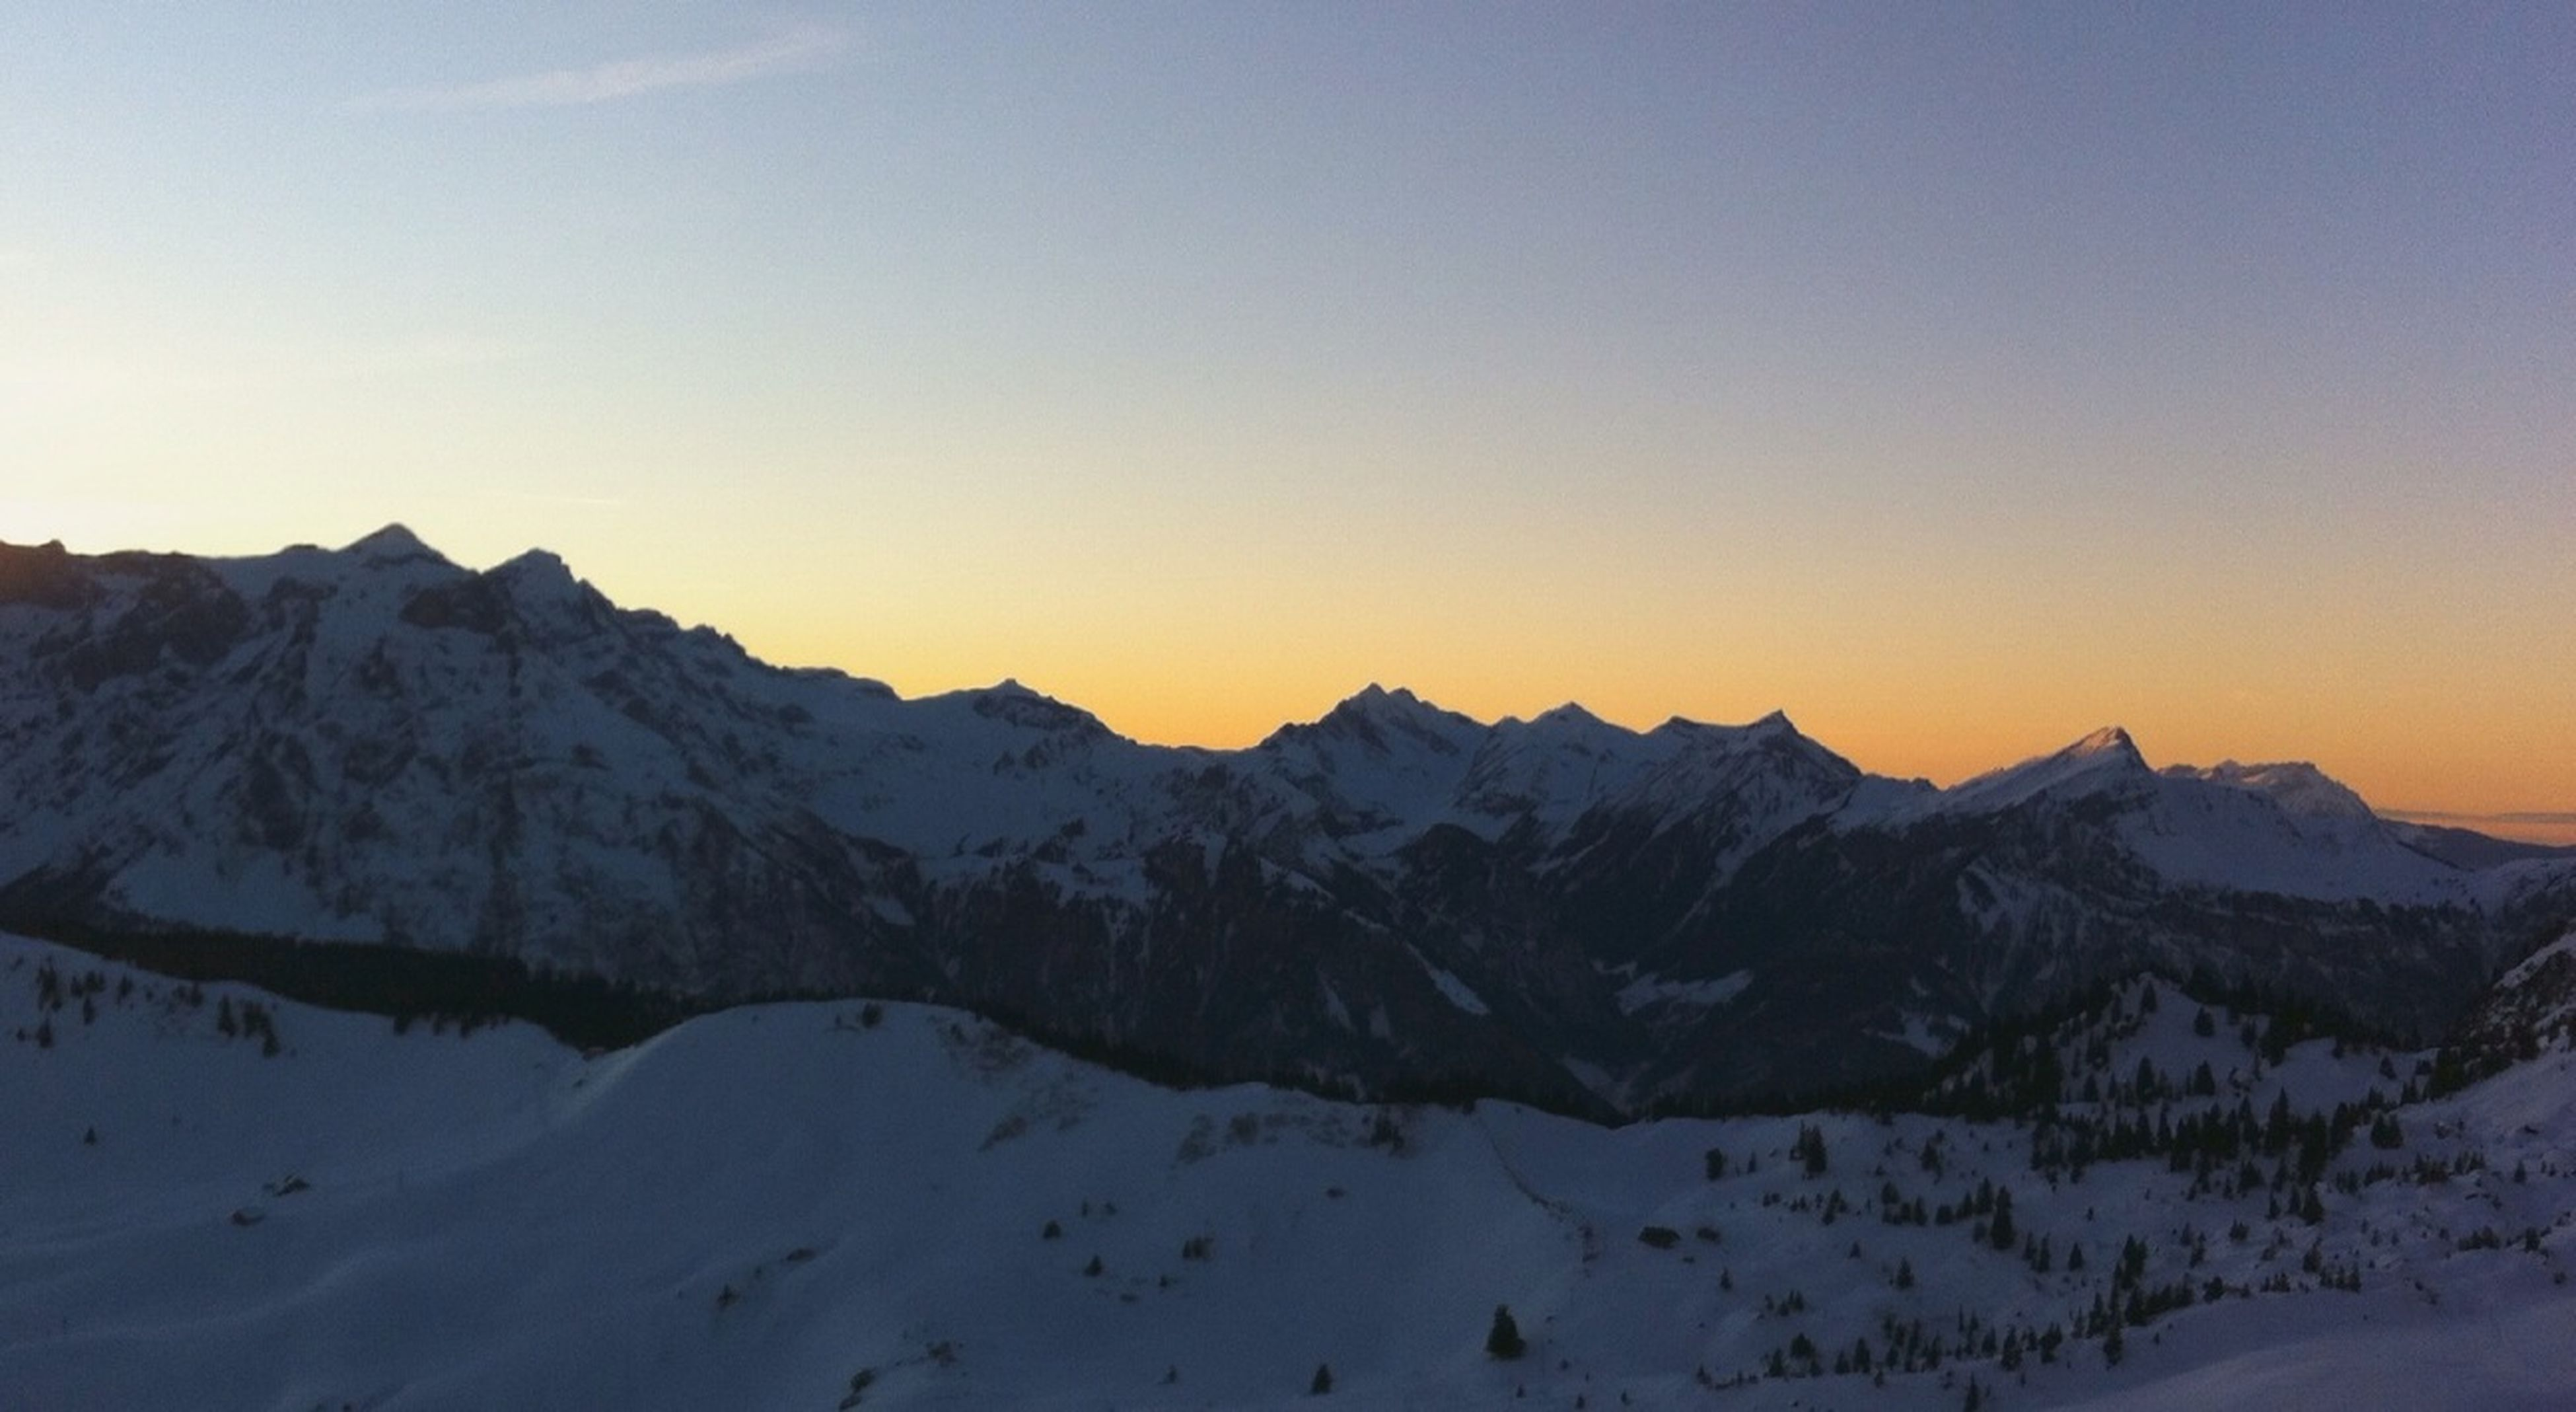 snow, winter, cold temperature, mountain, tranquil scene, scenics, season, tranquility, beauty in nature, mountain range, clear sky, sunset, landscape, snowcapped mountain, nature, weather, copy space, covering, non-urban scene, idyllic